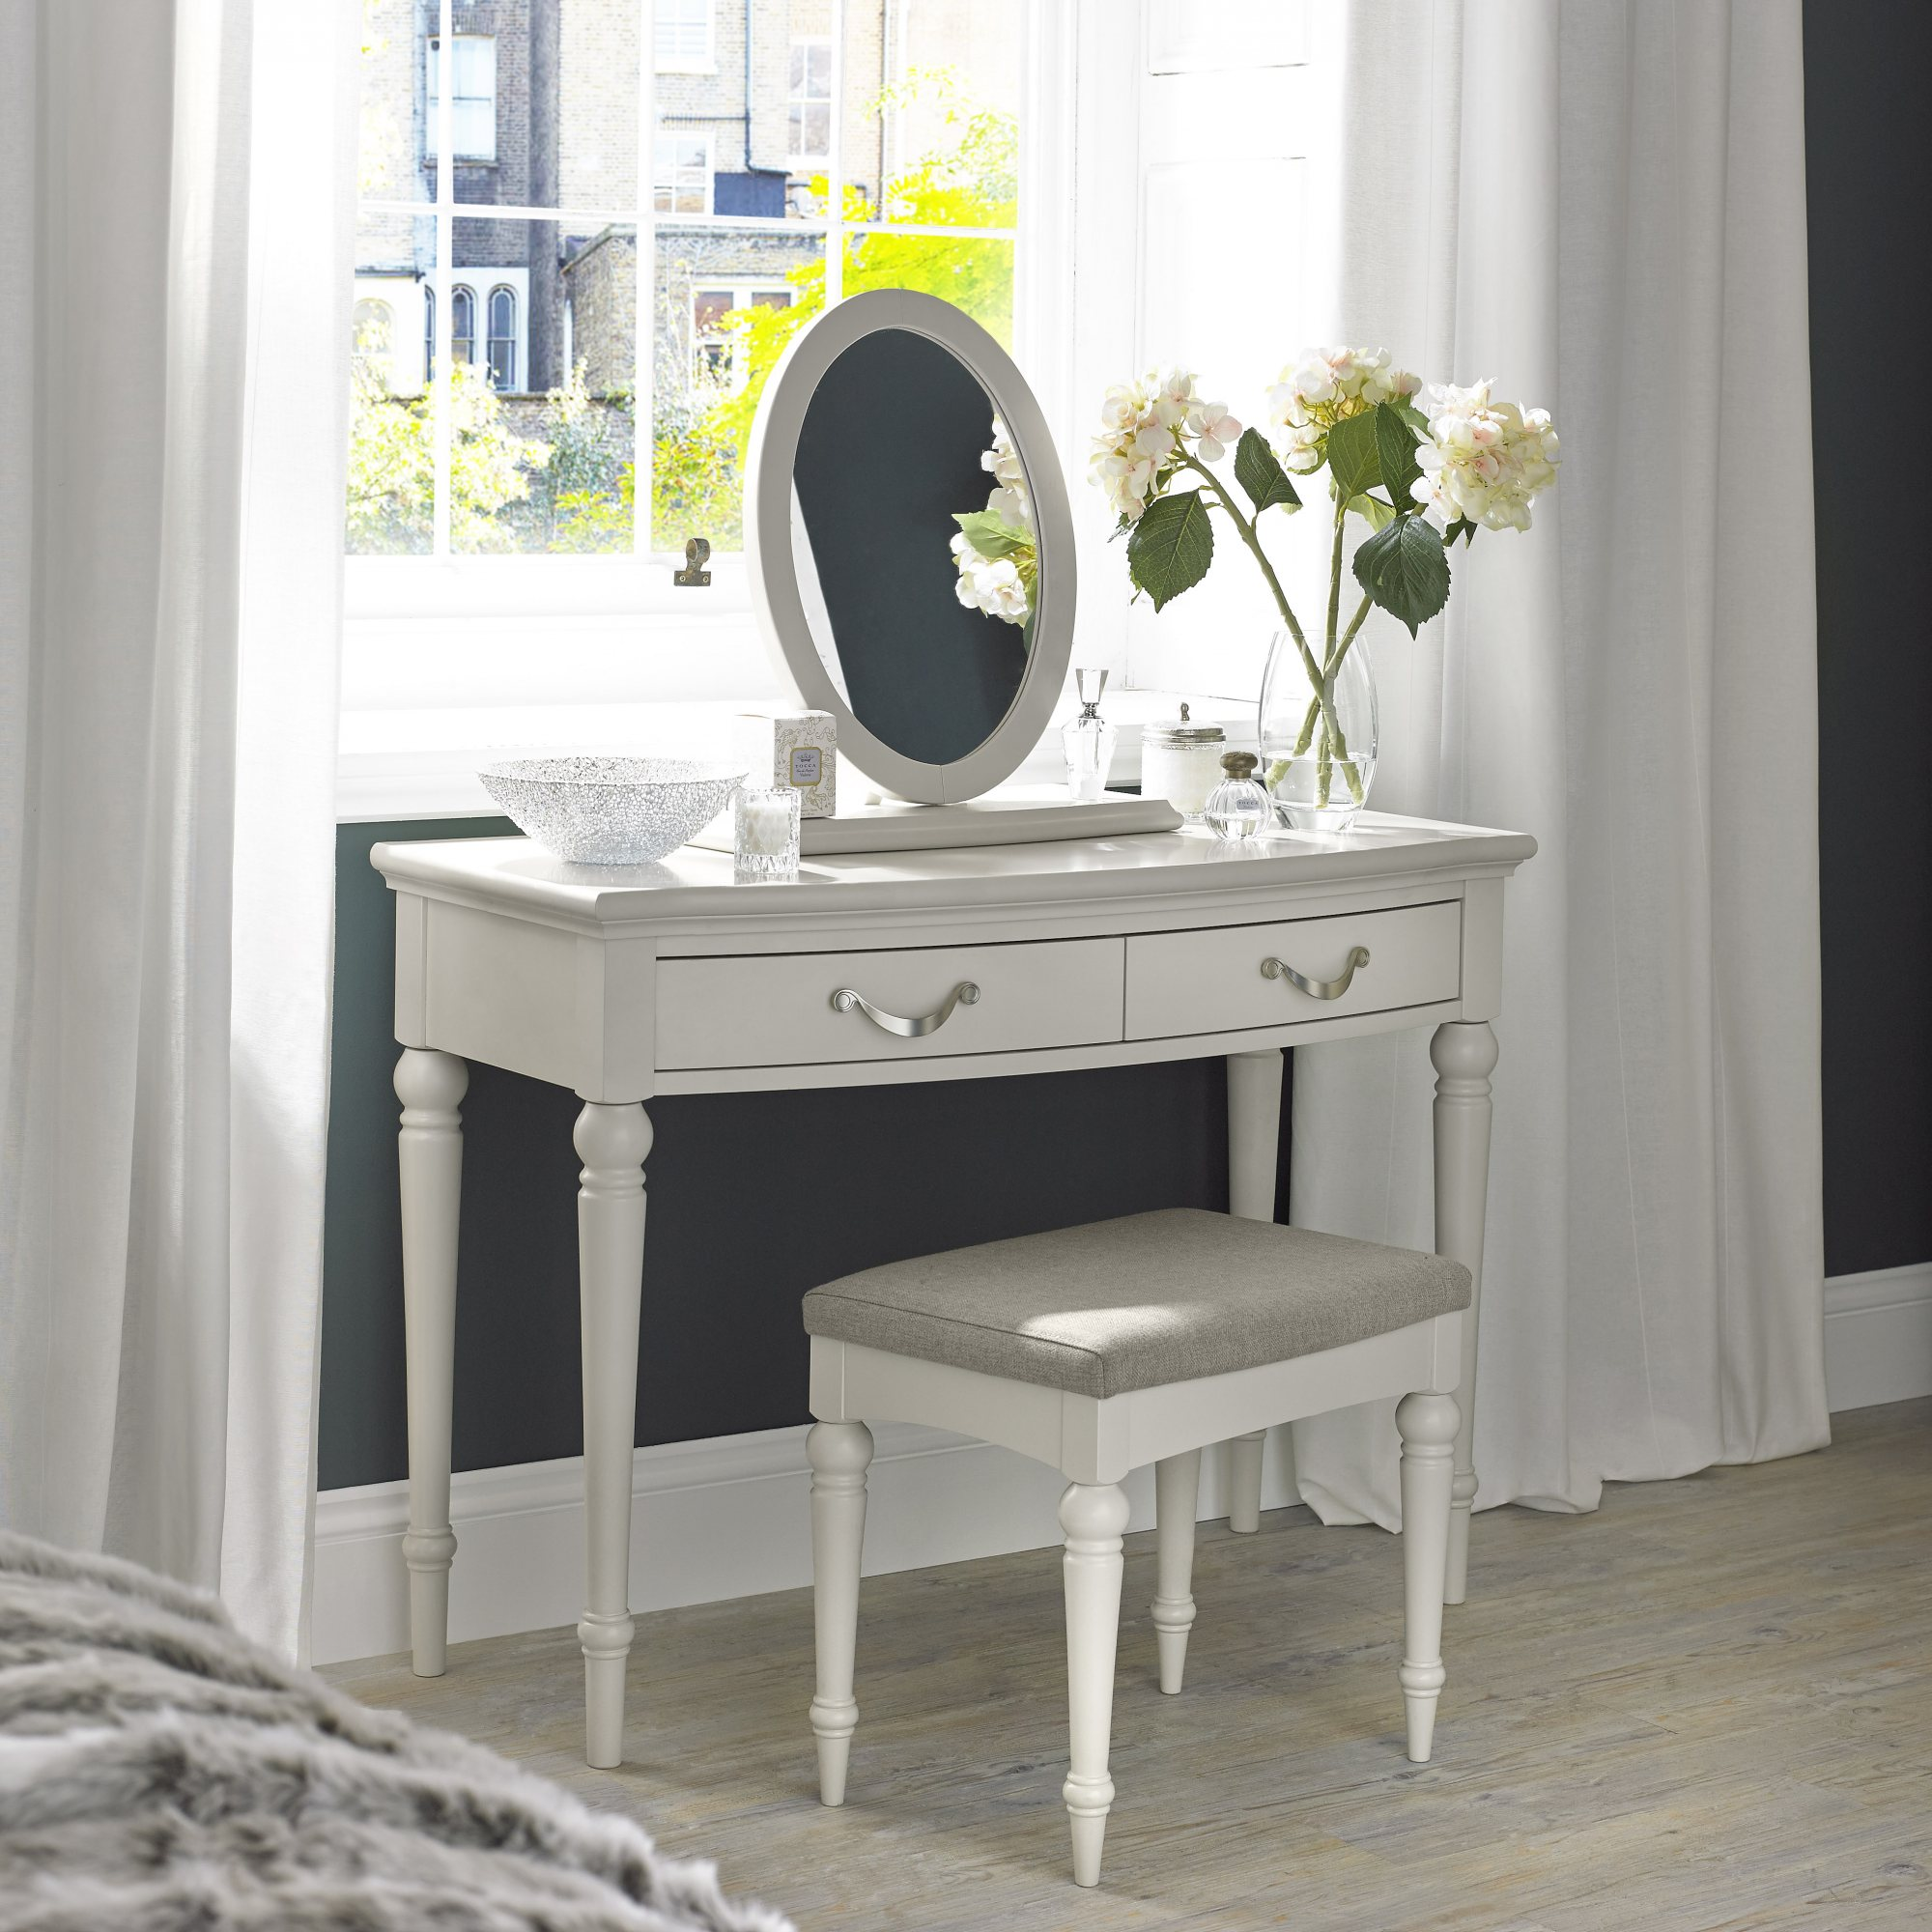 MONICA GREY DRESSING TABLE - L110cm x D49cm x H80cm